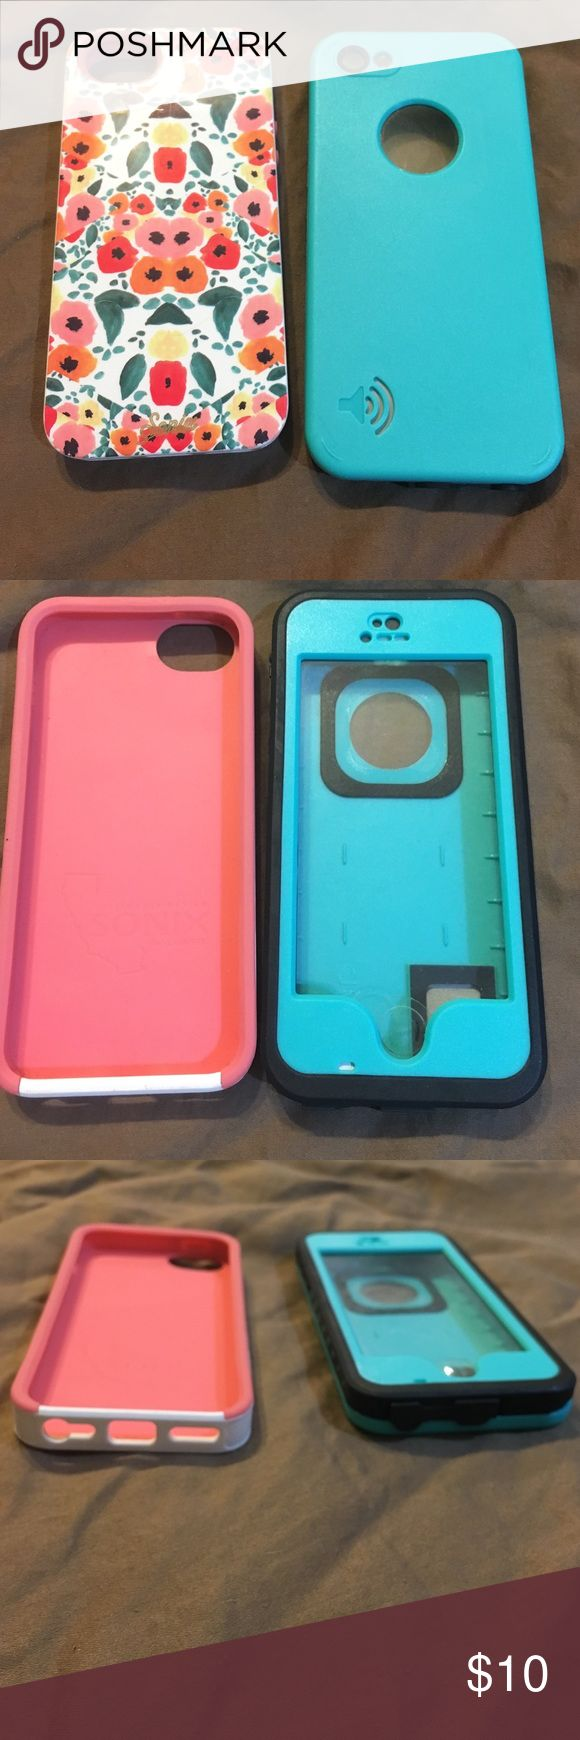 2 Phone cases for iPhone 5 iPhone 5/5s cases, case on left: Sonix by California Design; case on right: Favolcano case in Teal: waterproof and very durable. Both for sale for only $10! Accessories Phone Cases